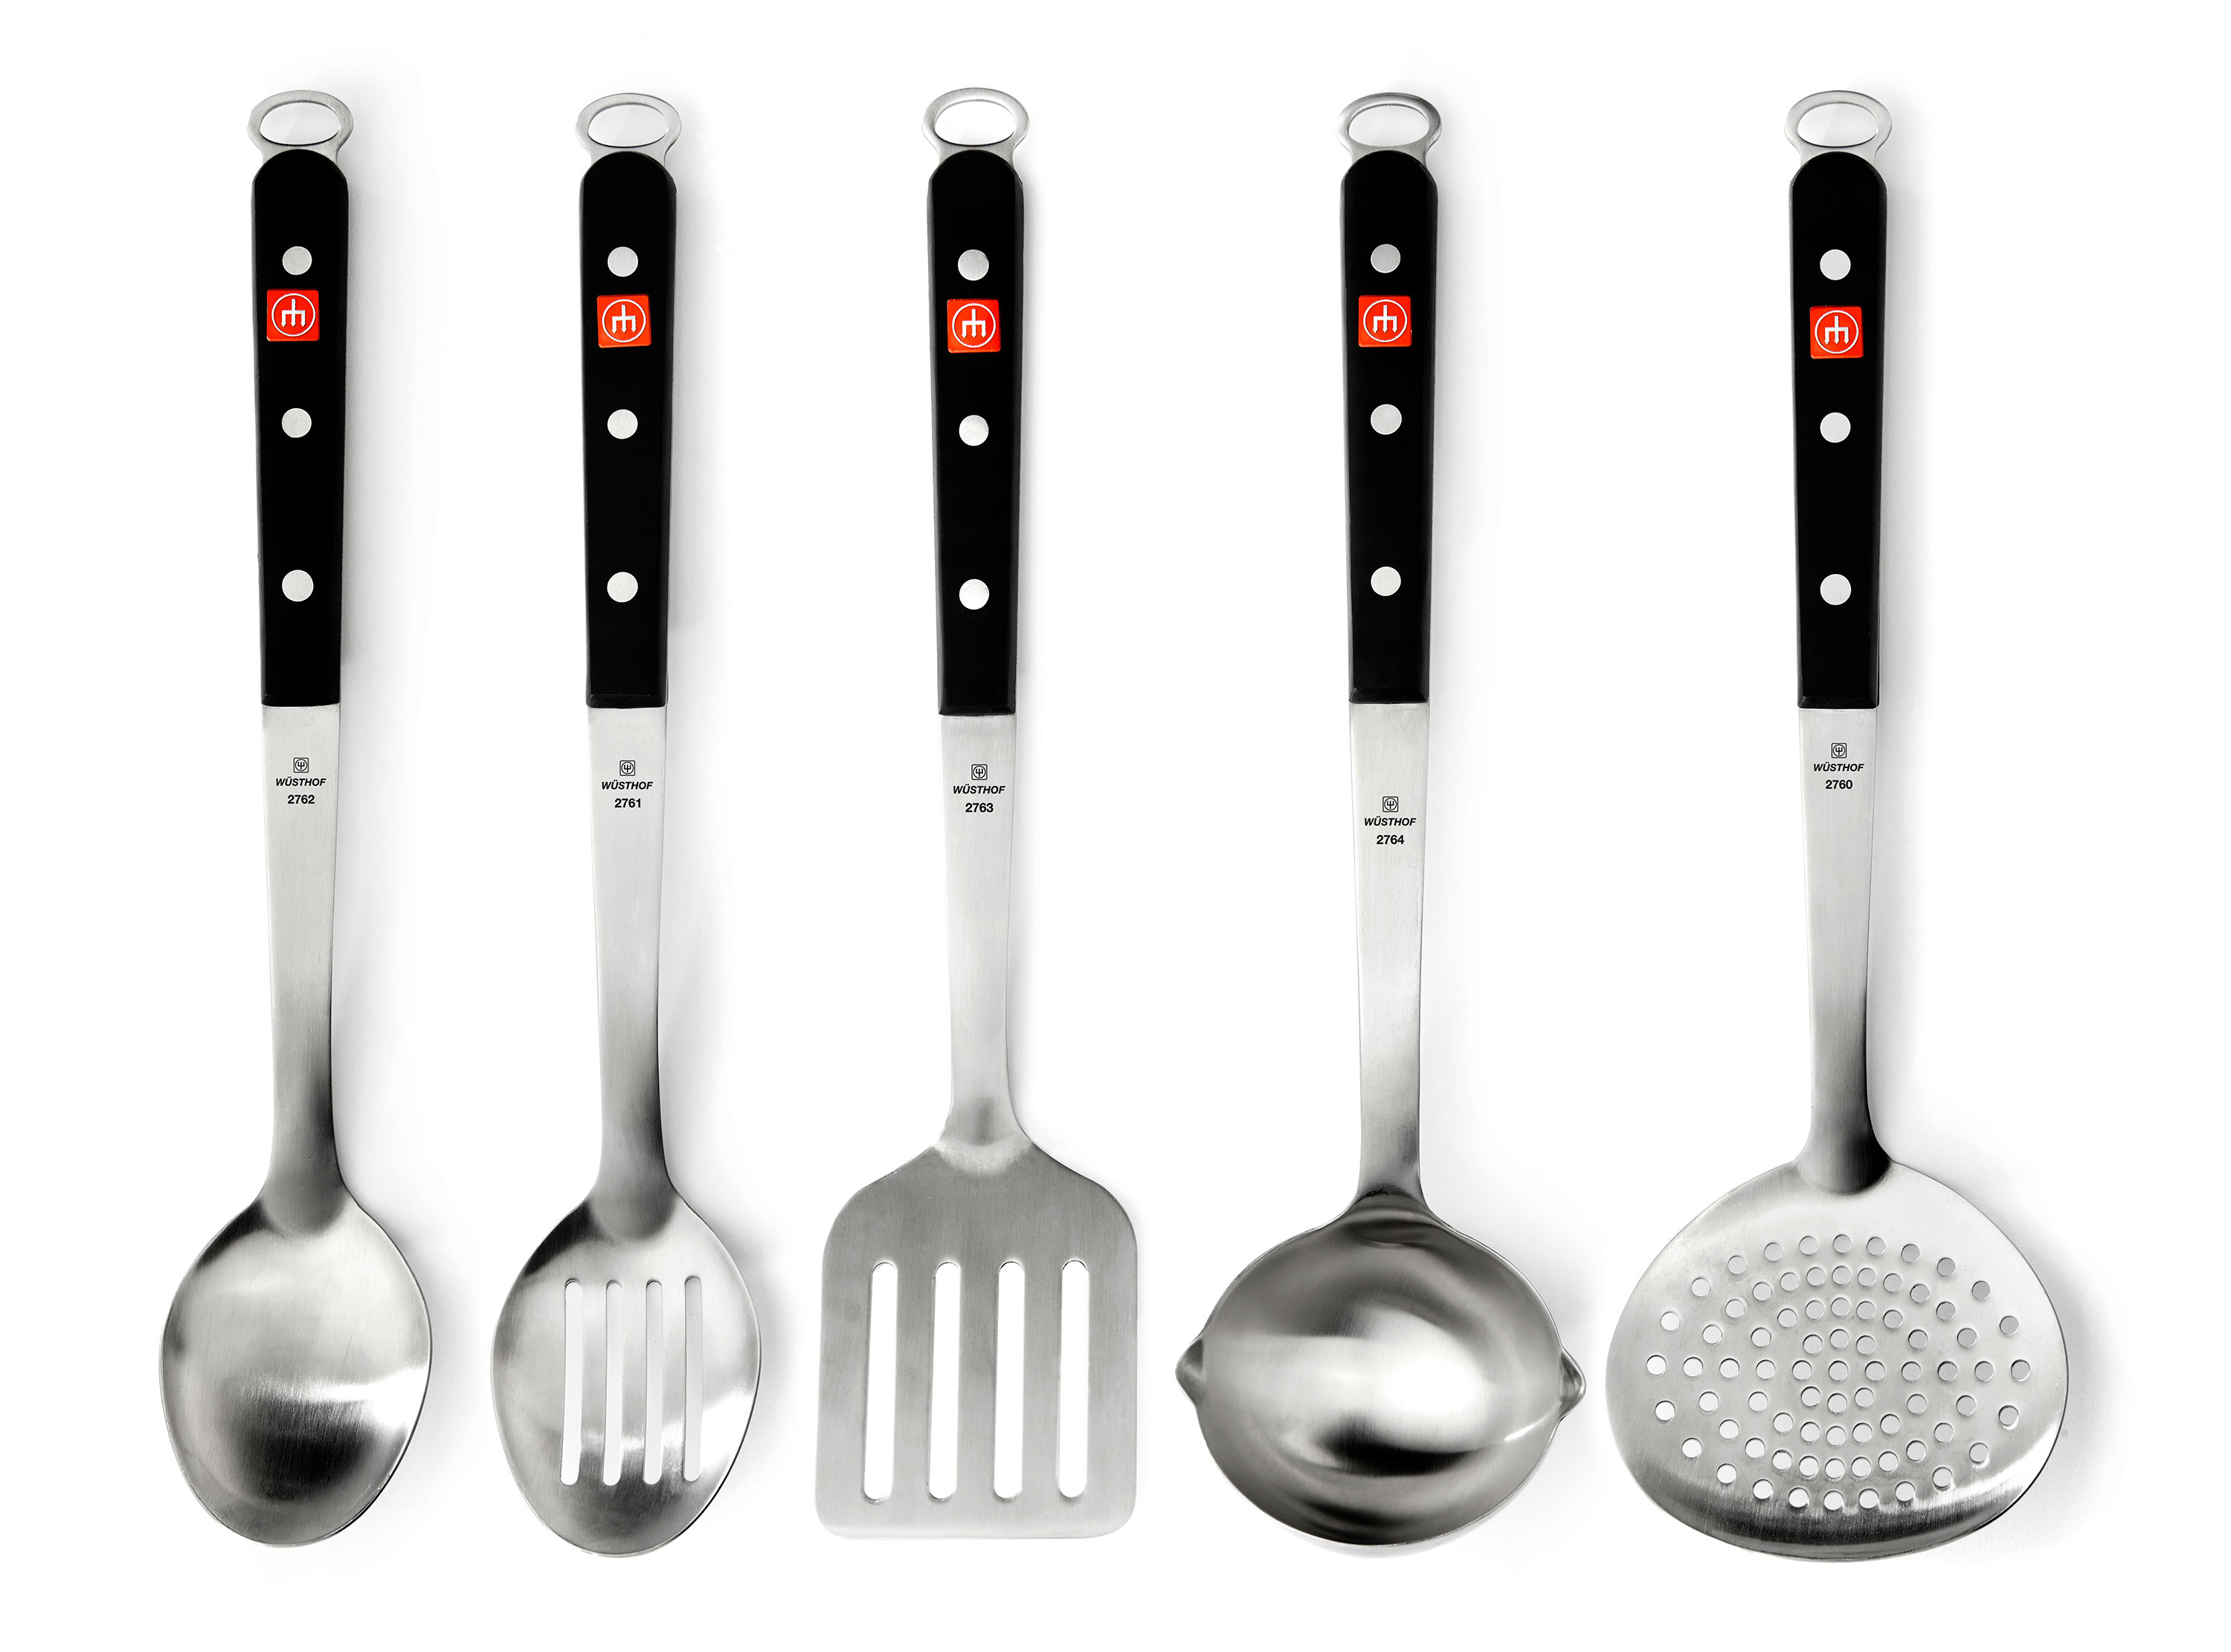 wusthof kitchen utensil set 5 piece tools cooking utensils